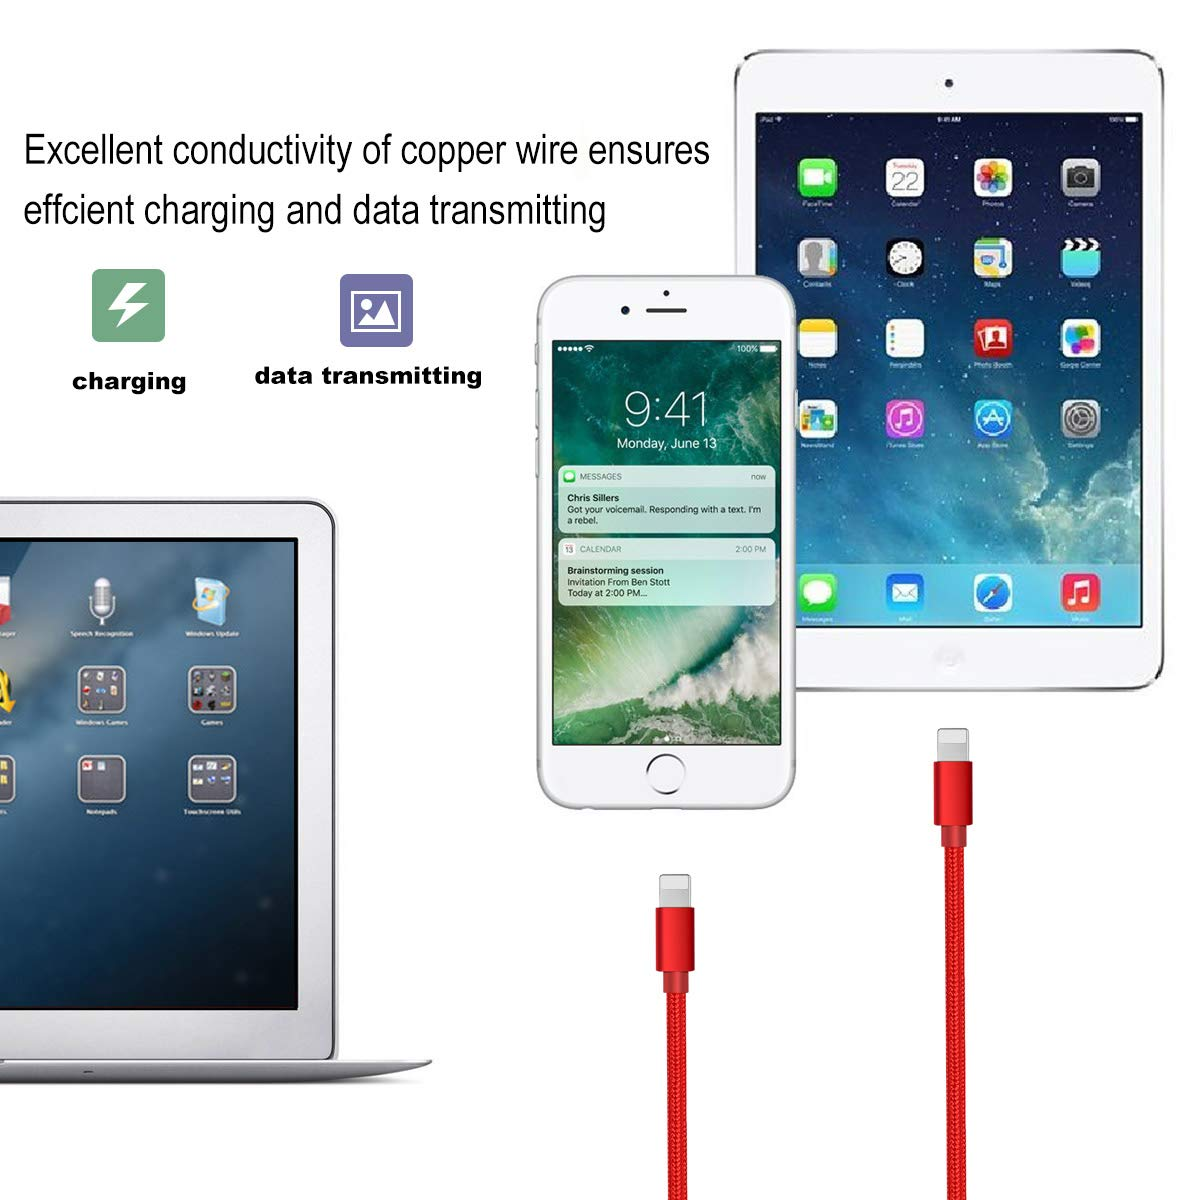 Phone Charger -3PACK 5FT Nylon Braided Charging Cable Cord USB Charger Cable High Speed Connector Data Sync Transfer Cord Compatible with Phone XS MAX XR X 8 7 plus 6s 6 Plus SE 5S 5C 5 Red